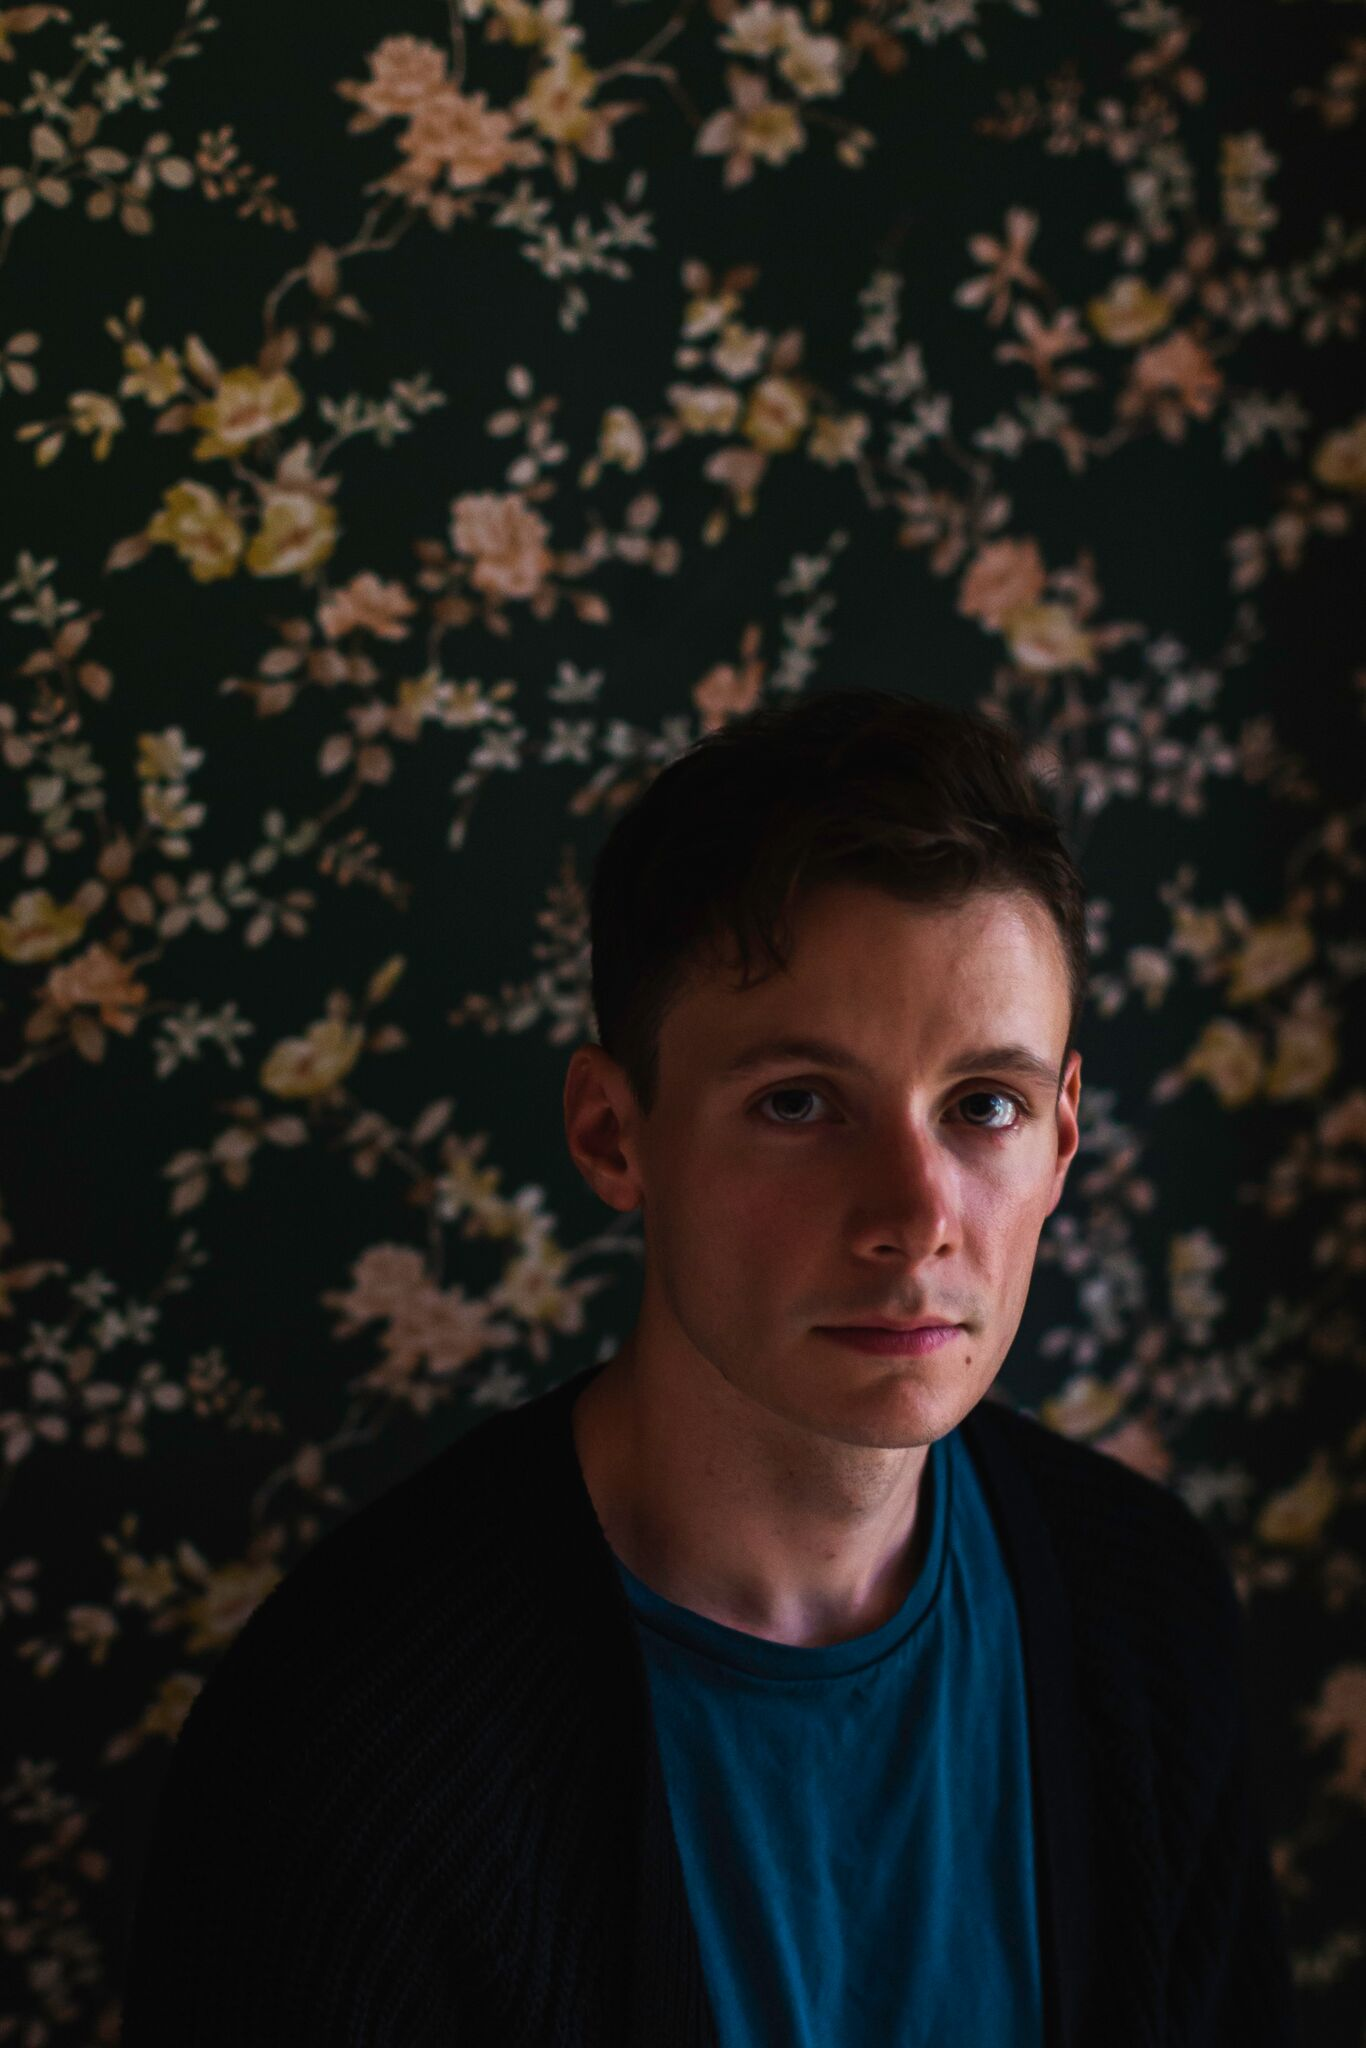 """PREMIERE: TONKS create sound of heart-break with """"Running Downhill"""""""